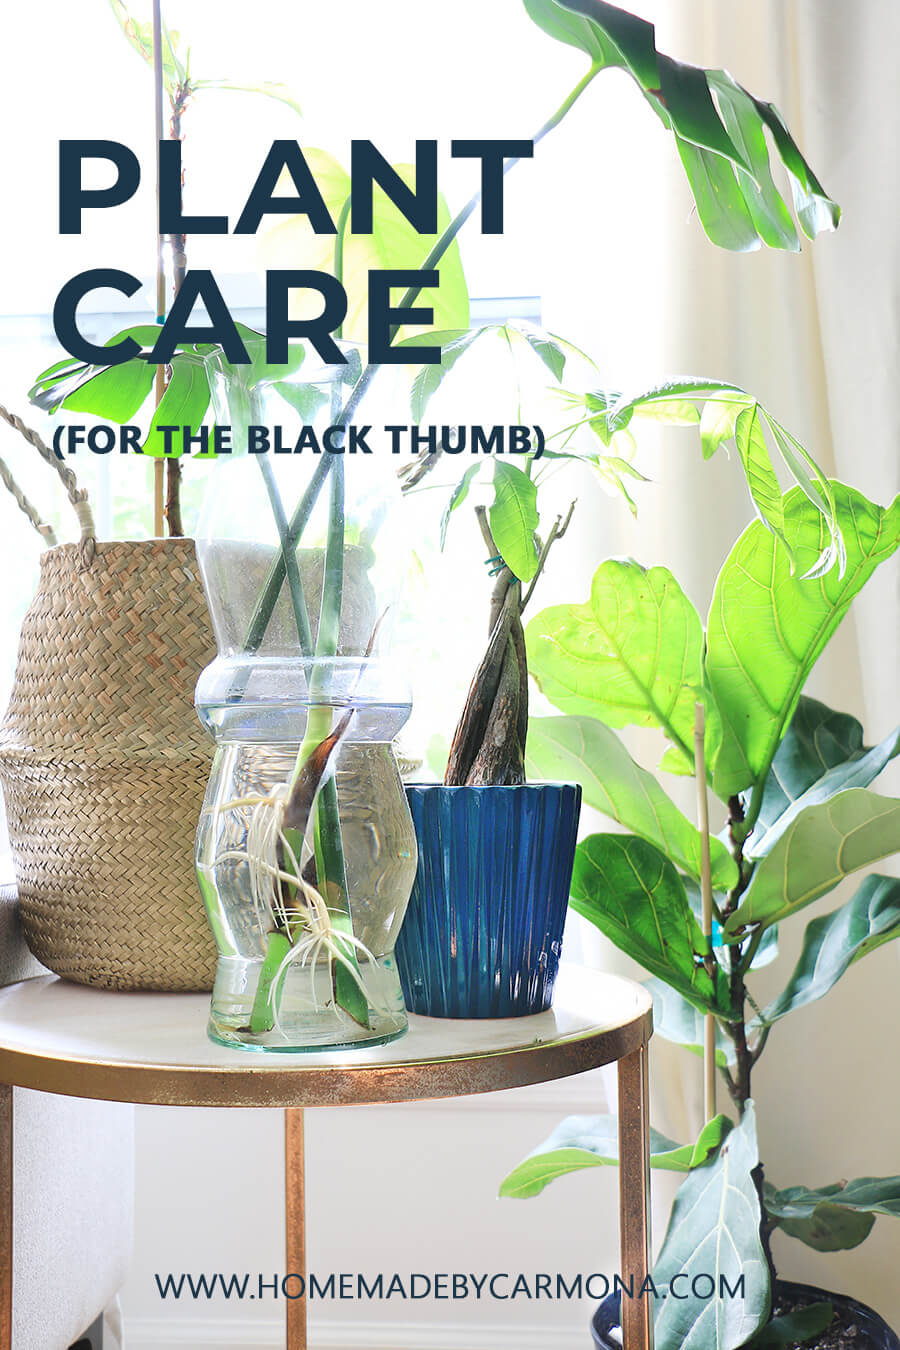 Houseplants-cared-for-in-jar